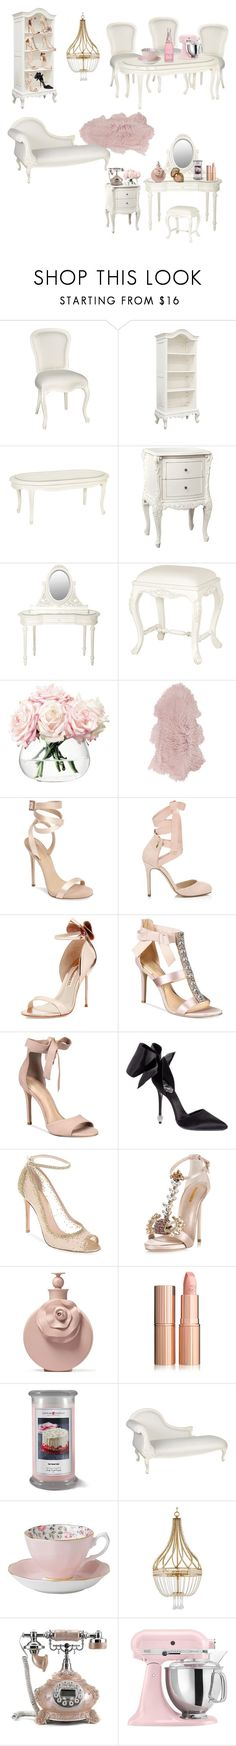 """""""French scream queens bedroom"""" by xvintageglamourx ❤ liked on Polyvore featuring LSA International, Amara, Giuseppe Zanotti, Miss Selfridge, Sophia Webster, Badgley Mischka, ALDO, Gianvito Rossi, Dsquared2 and Valentino"""